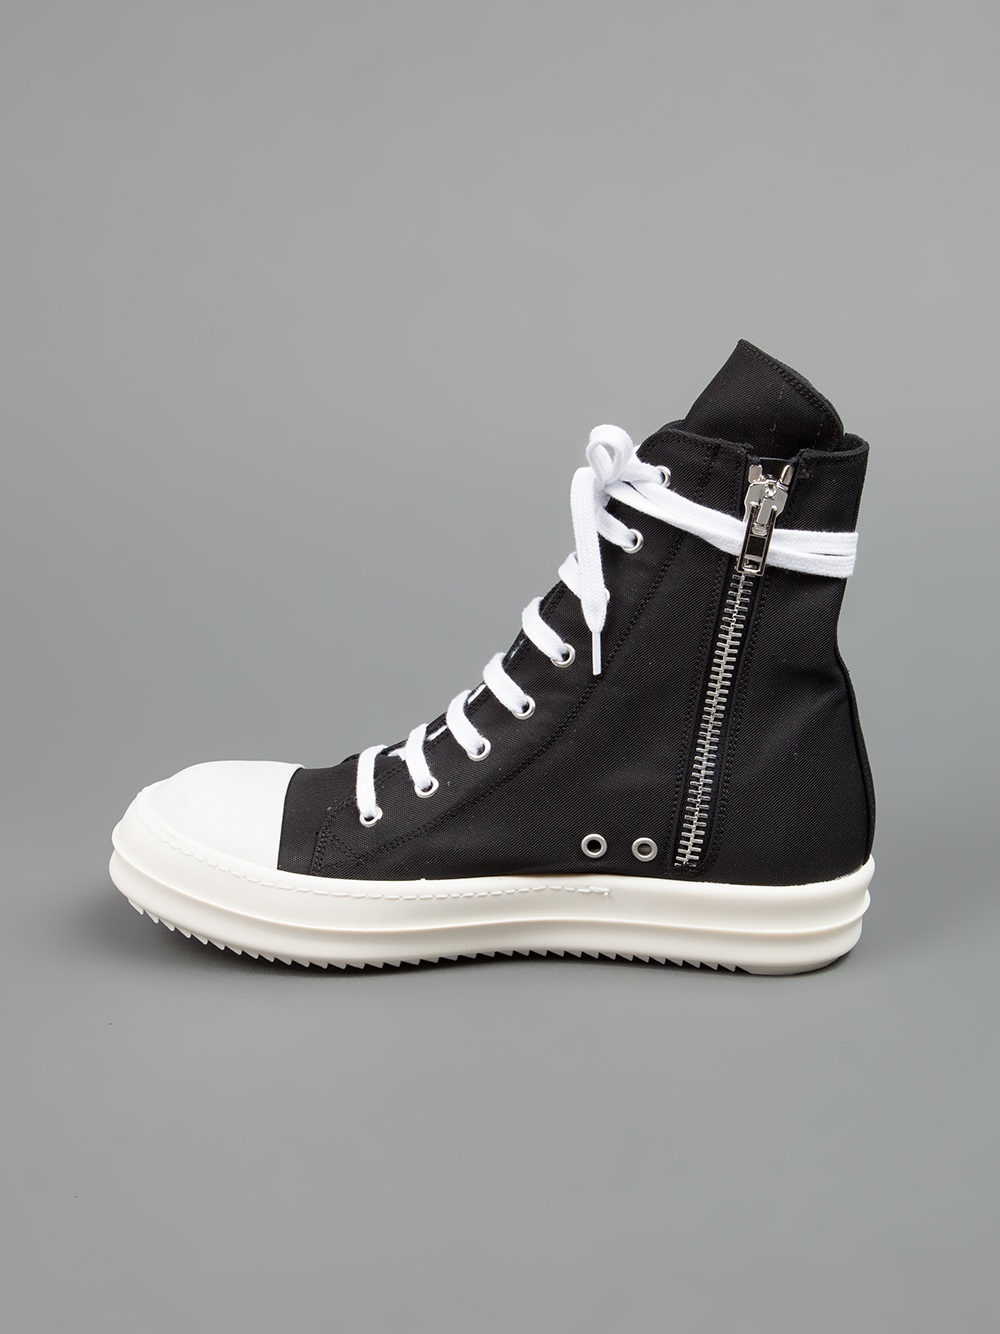 outlet reliable factory outlet Rick Owens DRKSHDW hi top sneakers discount outlet store outlet explore recommend online 5tdLarO9r